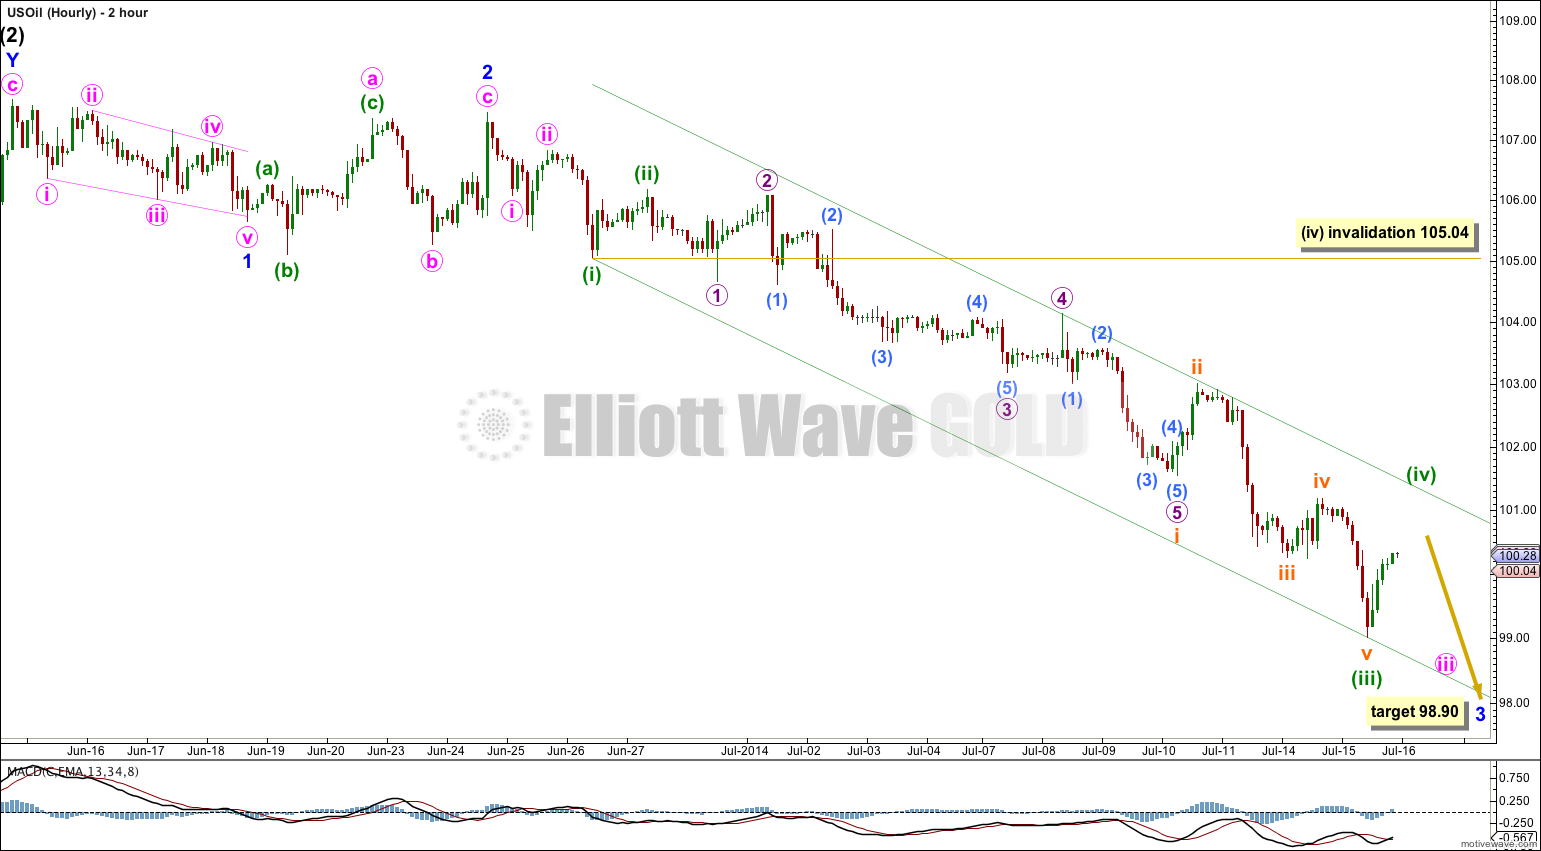 US Oil Elliott Wave Chart 2 Hourly 2014